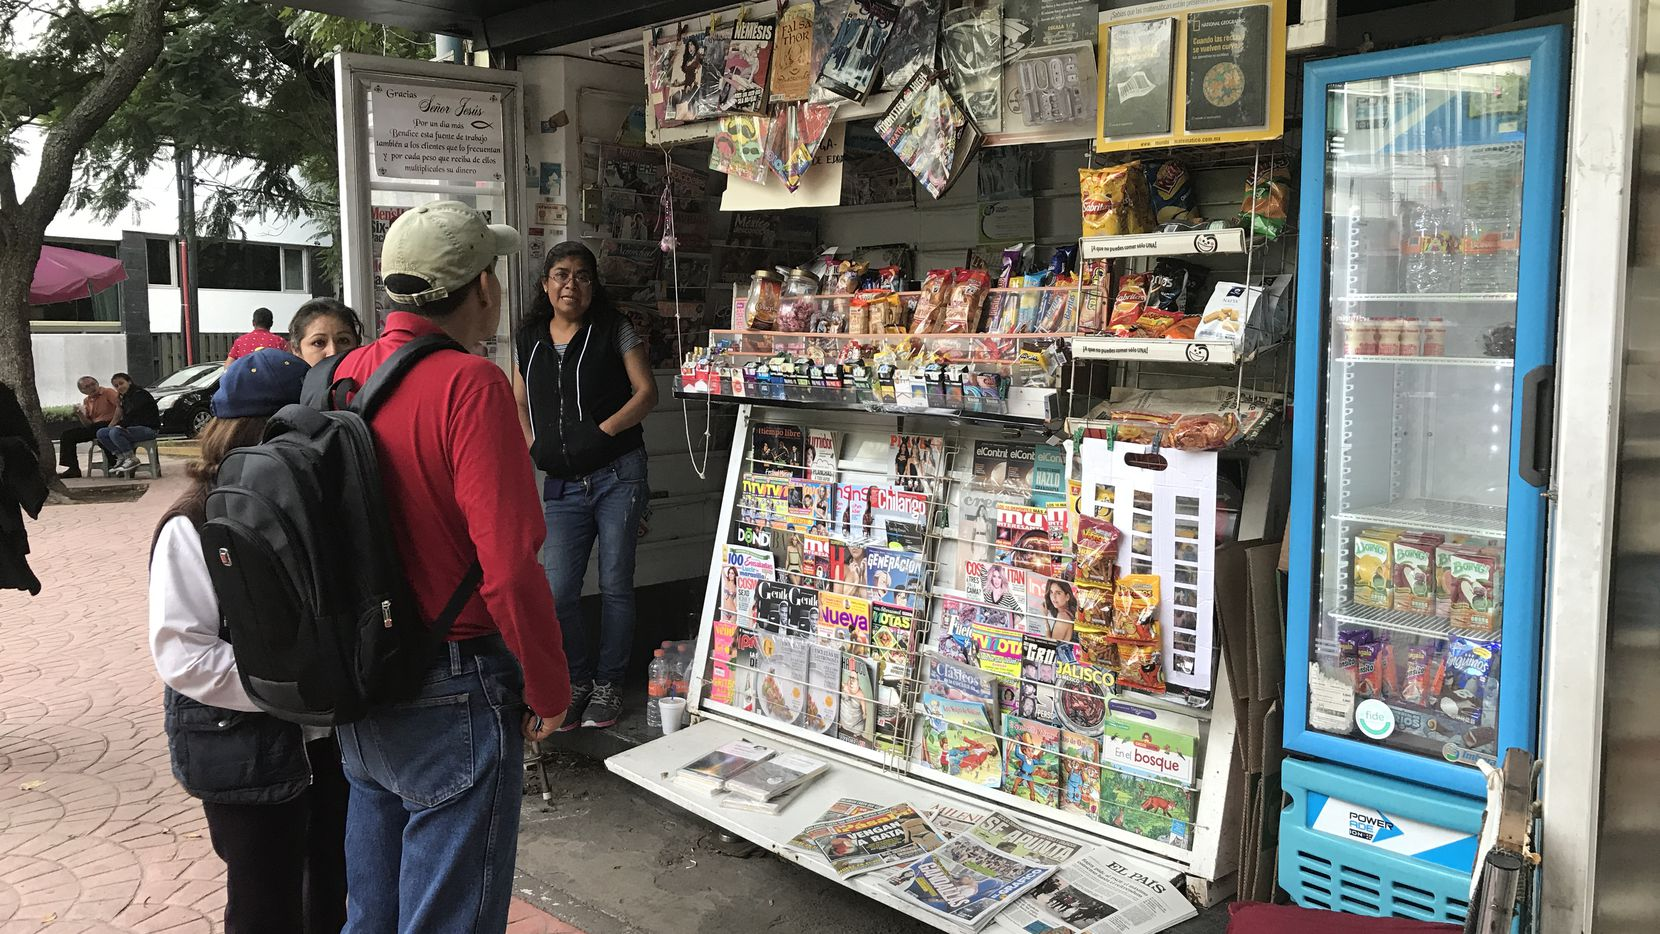 Residents in Mexico City stop at a news stand to take a look at the latest headlines. Stories about government corruption dominate news in Mexico as talks to renegotiate NAFTA begin.